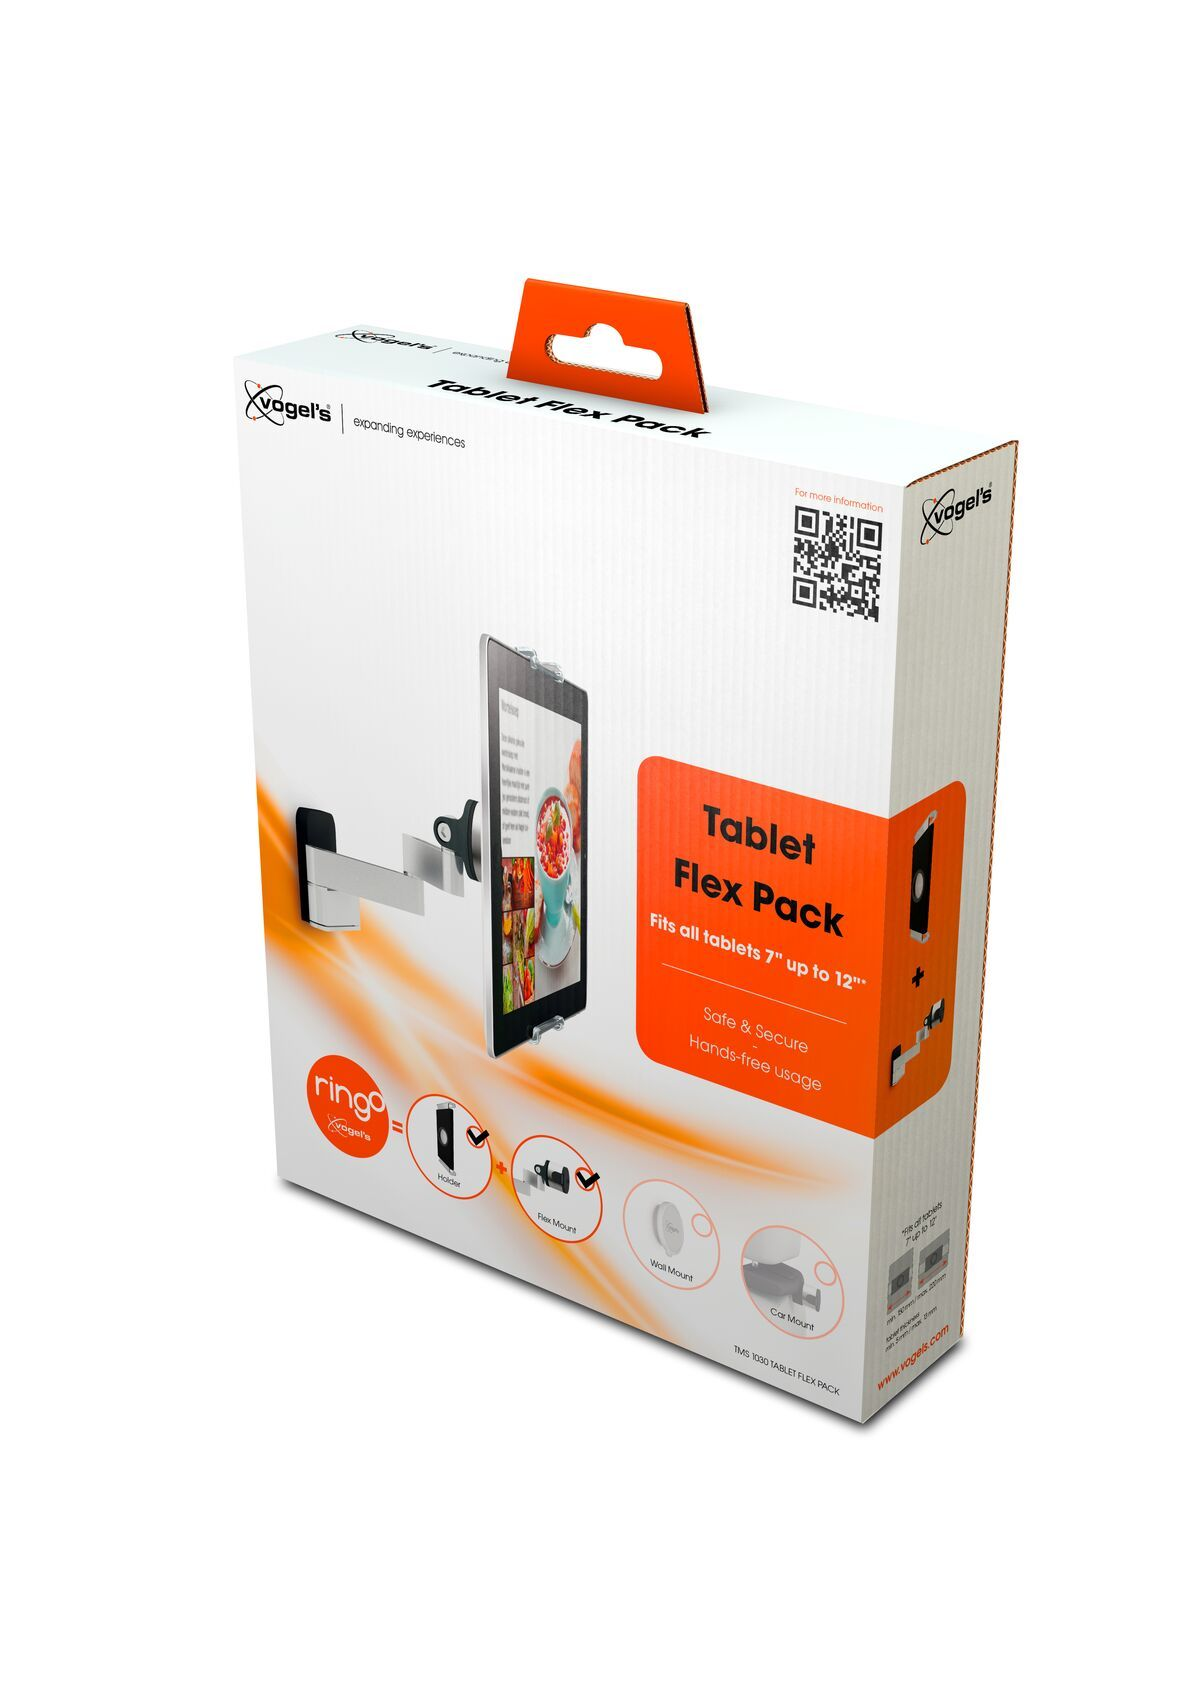 Vogel's TMS 1030 Tablet Flex Pack - Pack shot 3D